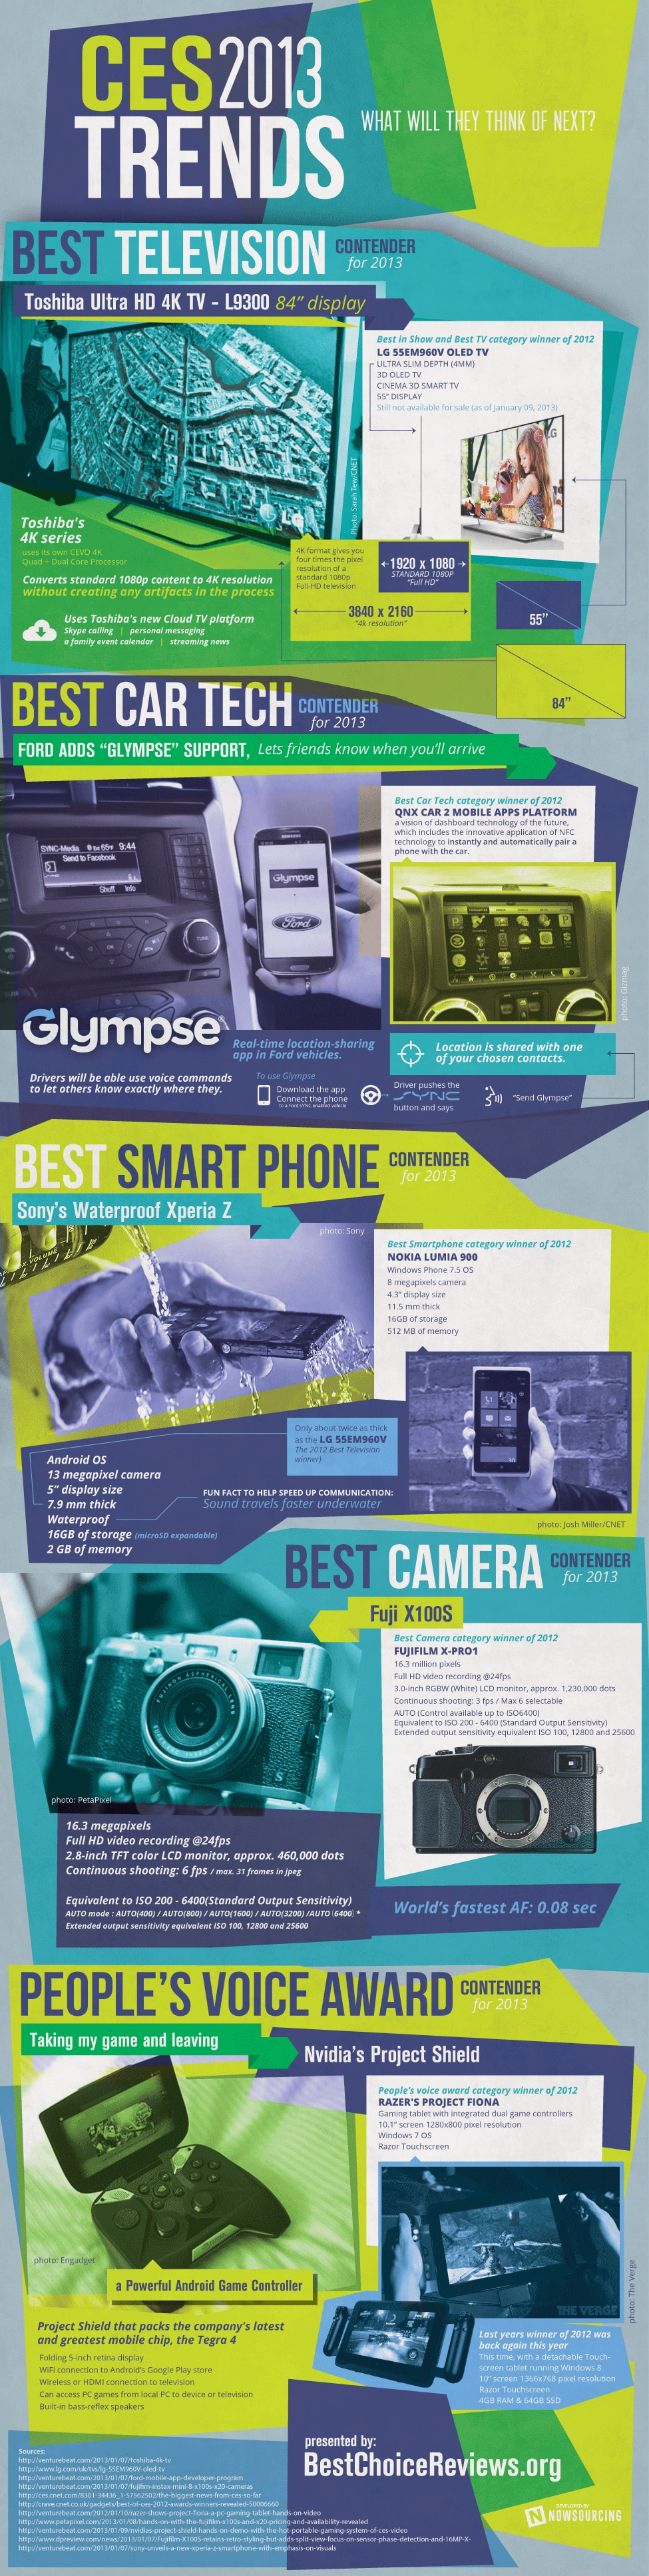 CES 2013 vs. CES 2012: How Far We've Come In One Year [Infographic]